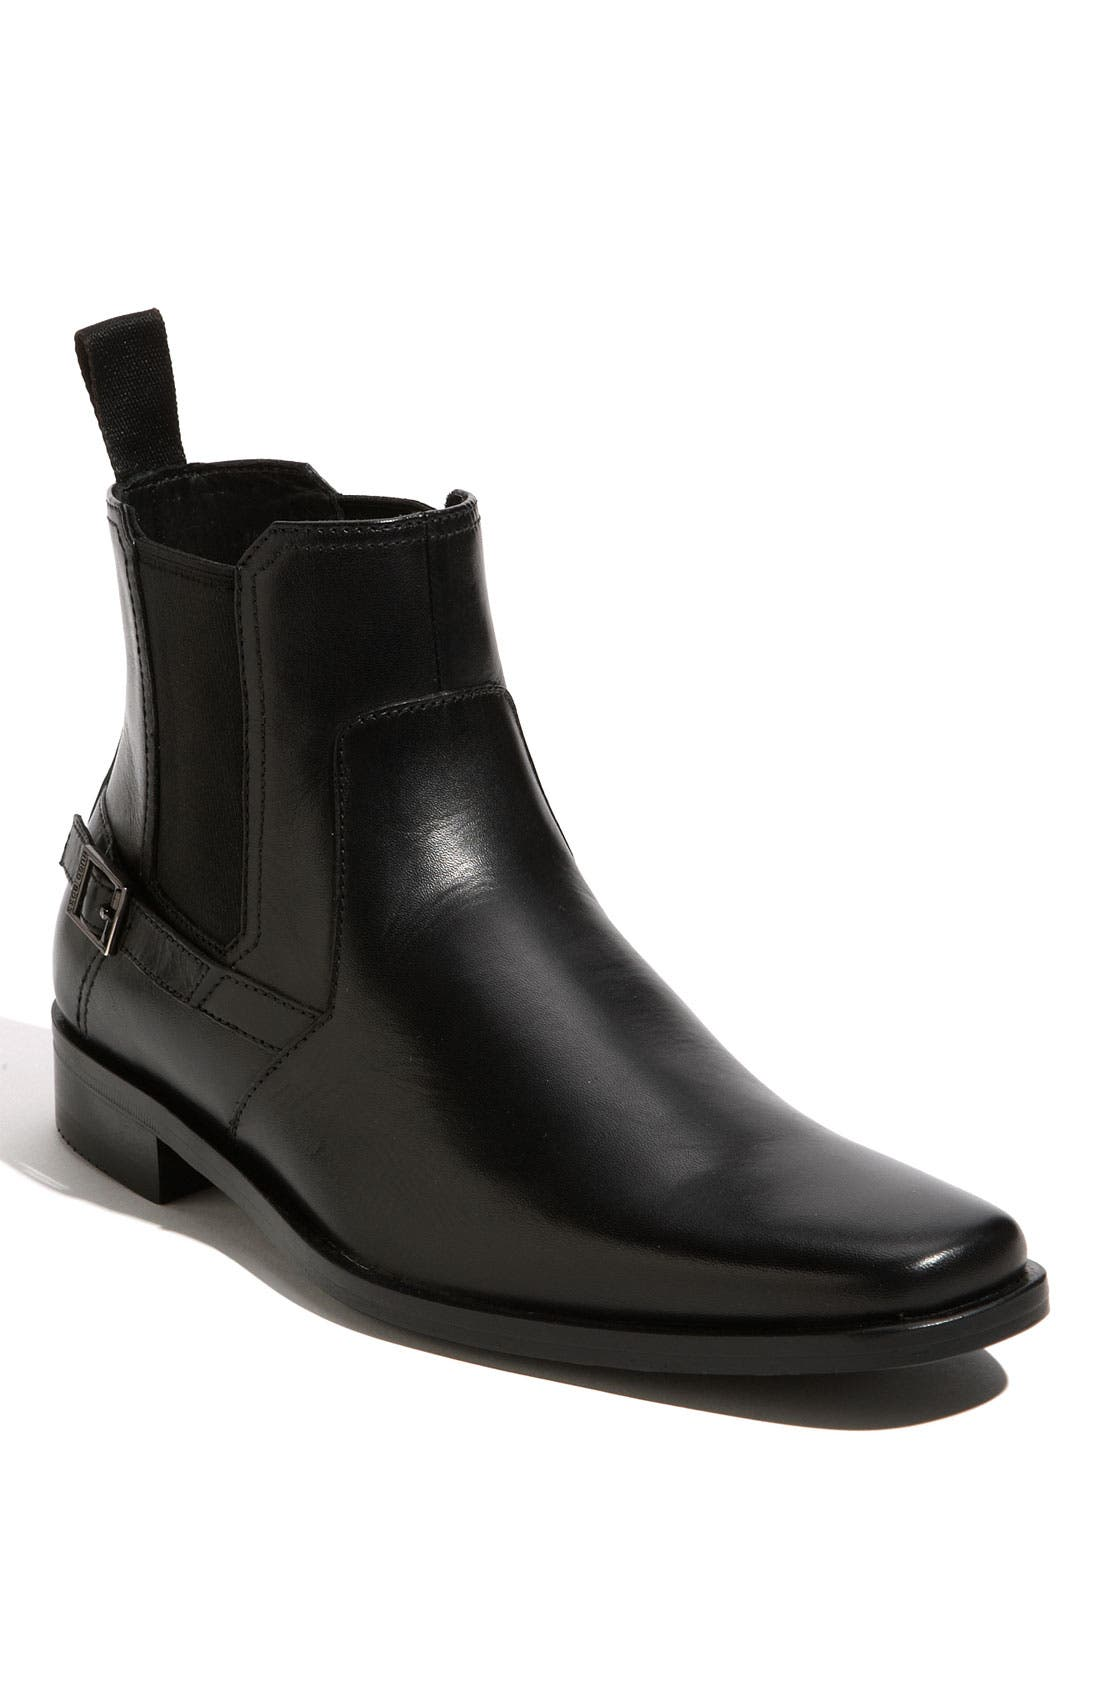 Alternate Image 1 Selected - BOSS Black 'Laxis' Boot